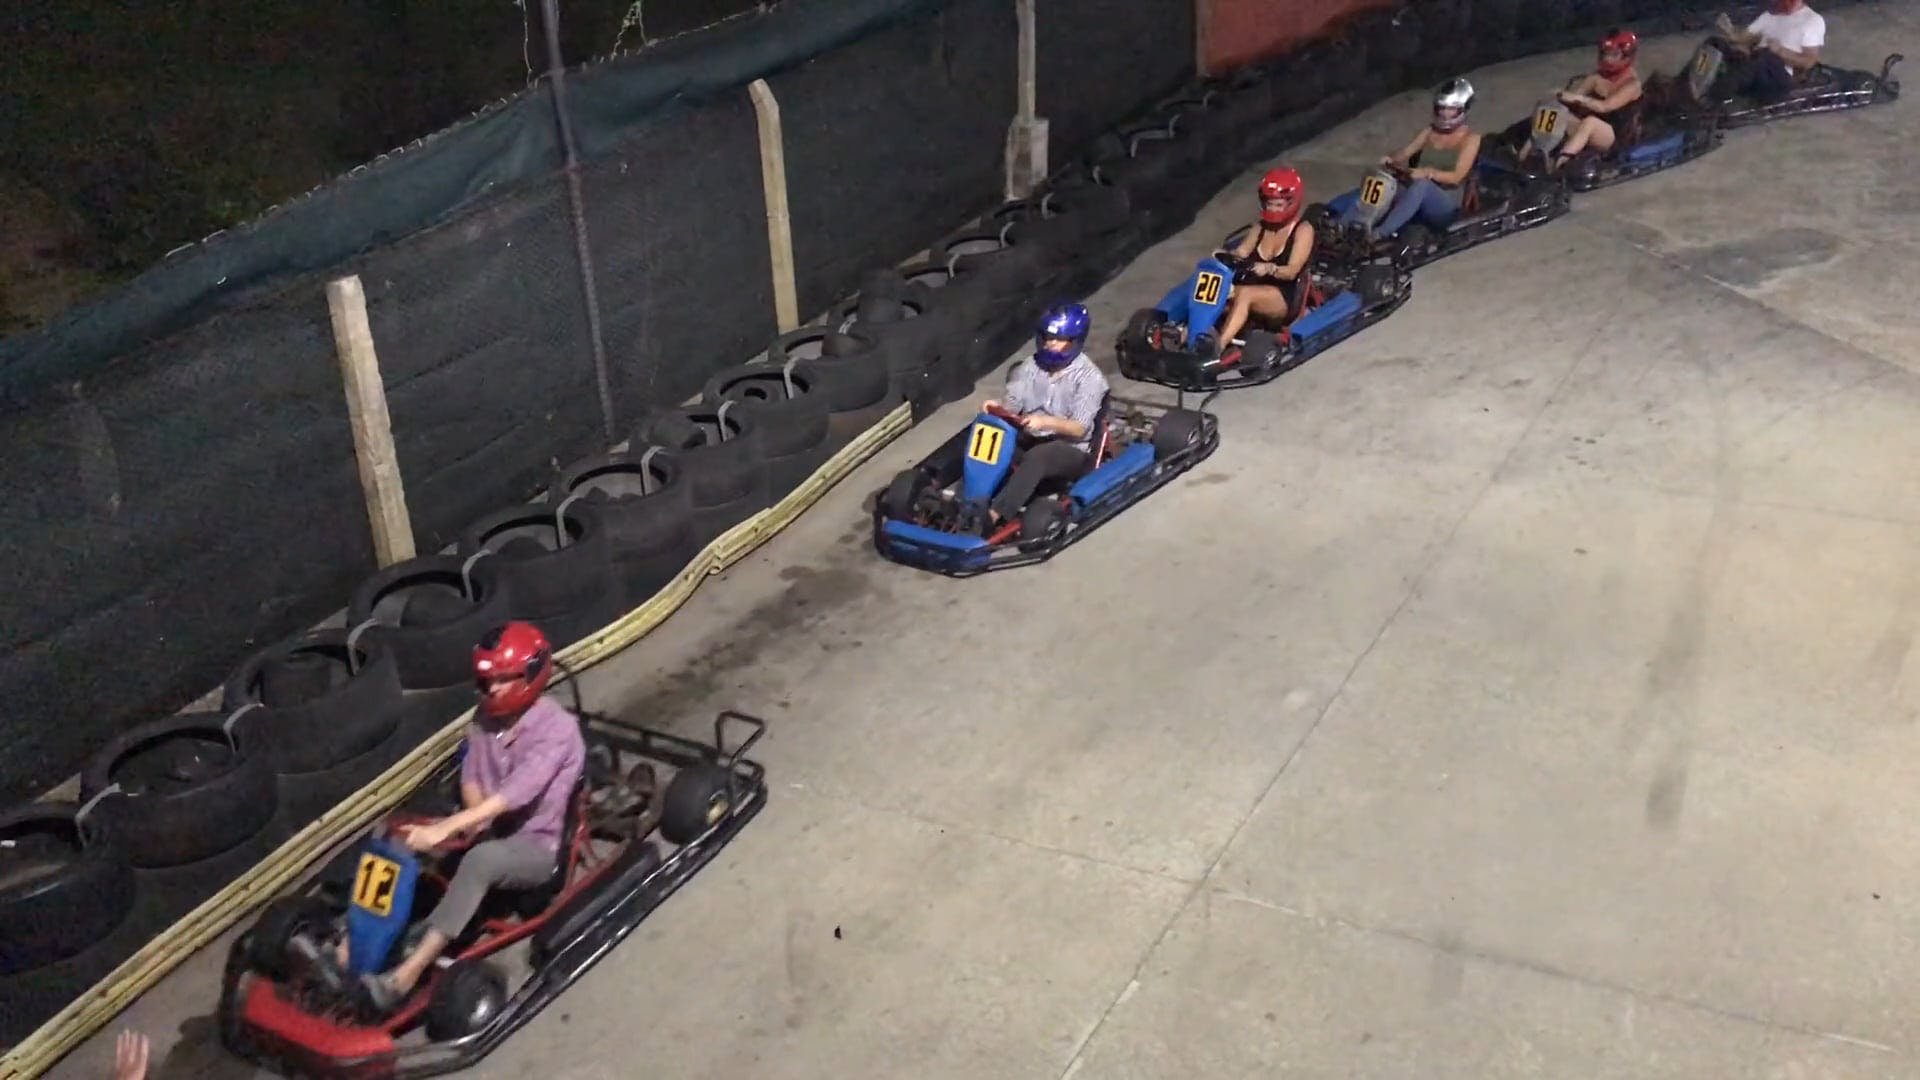 People On Go Karts